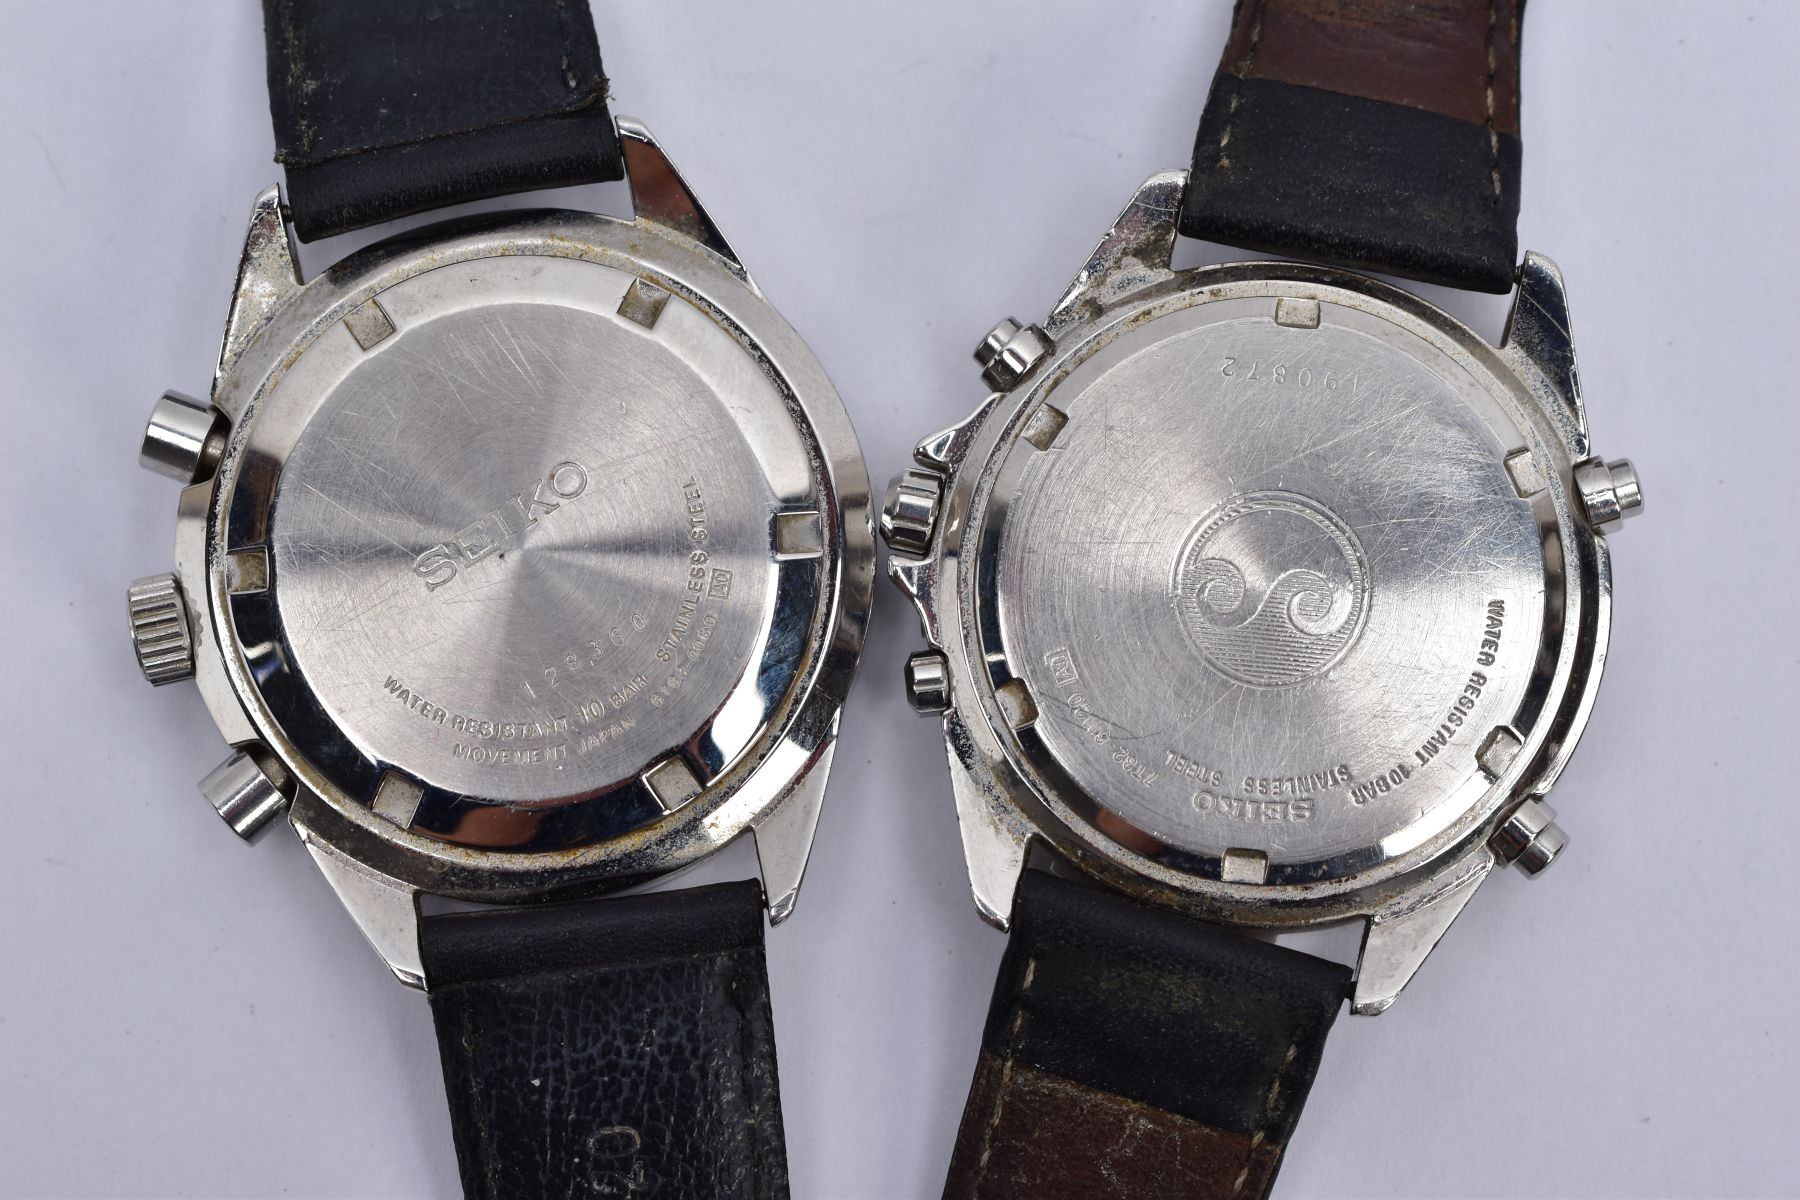 TWO GENTS 'SEIKO CHRONOGRAPH' WRISTWATCHES, the first with round black dial signed 'Seiko - Image 3 of 5